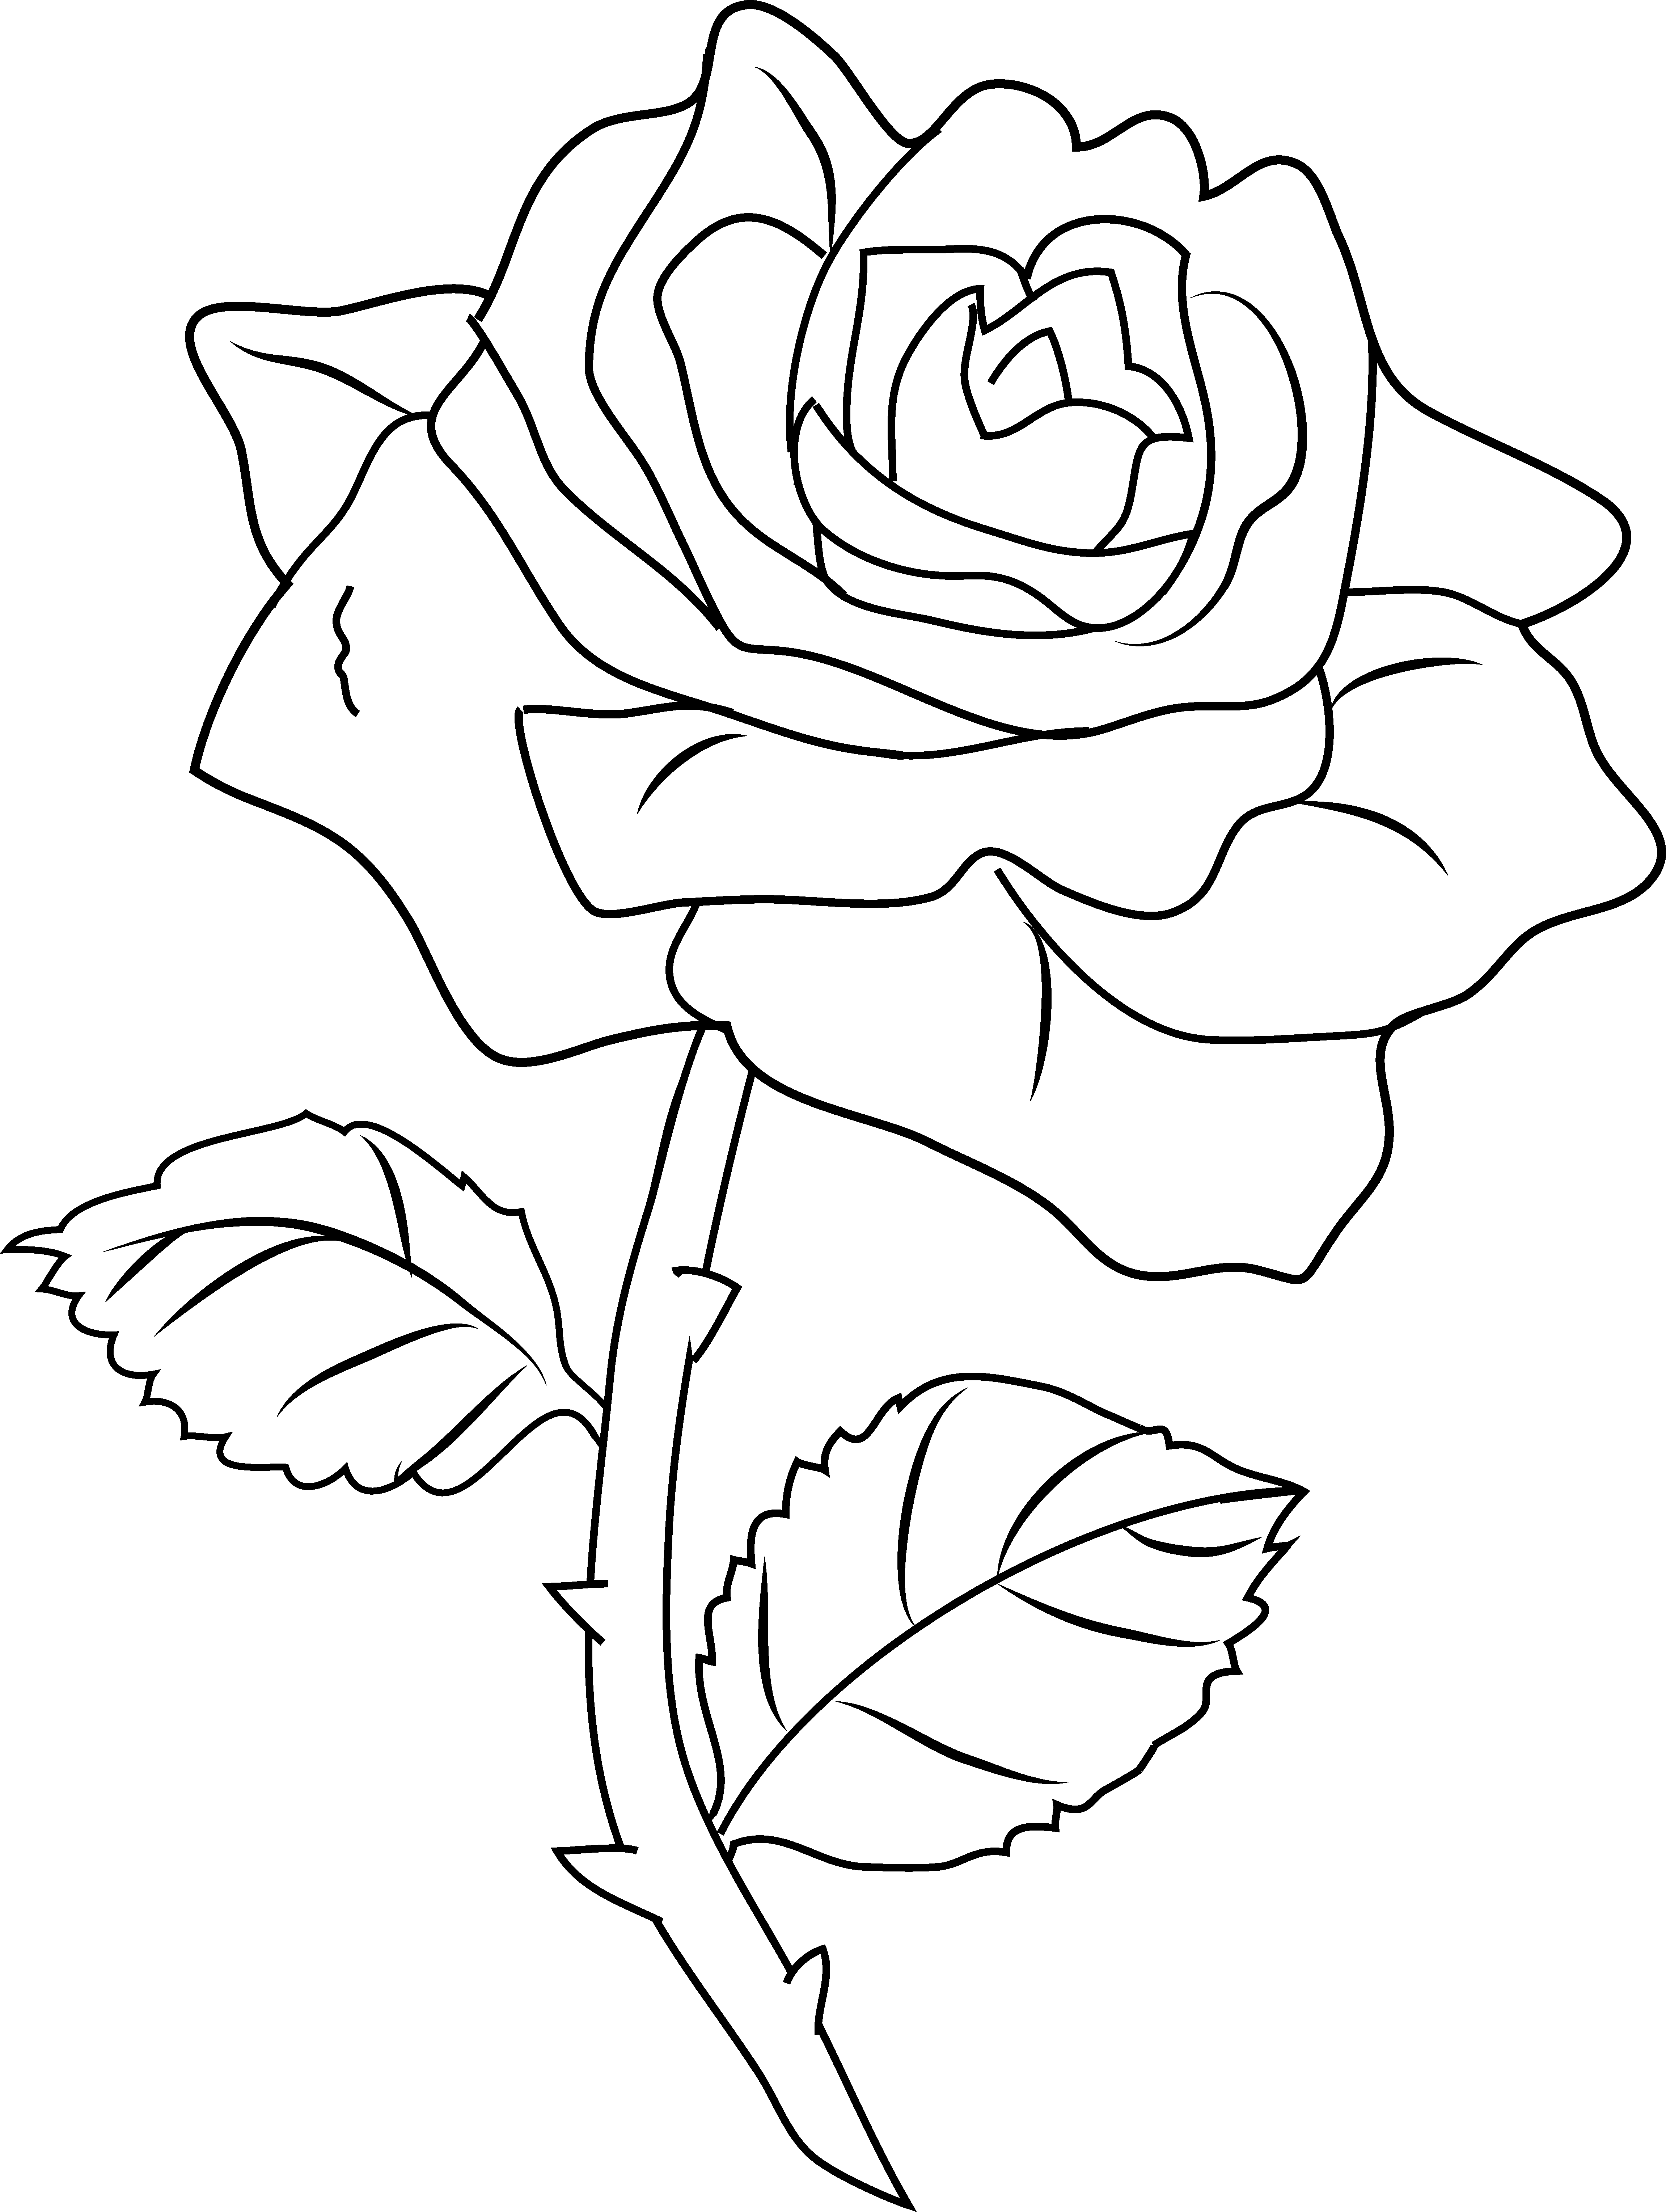 free coloring pages of flowers rose color clipart 20 free cliparts download images on of coloring free flowers pages